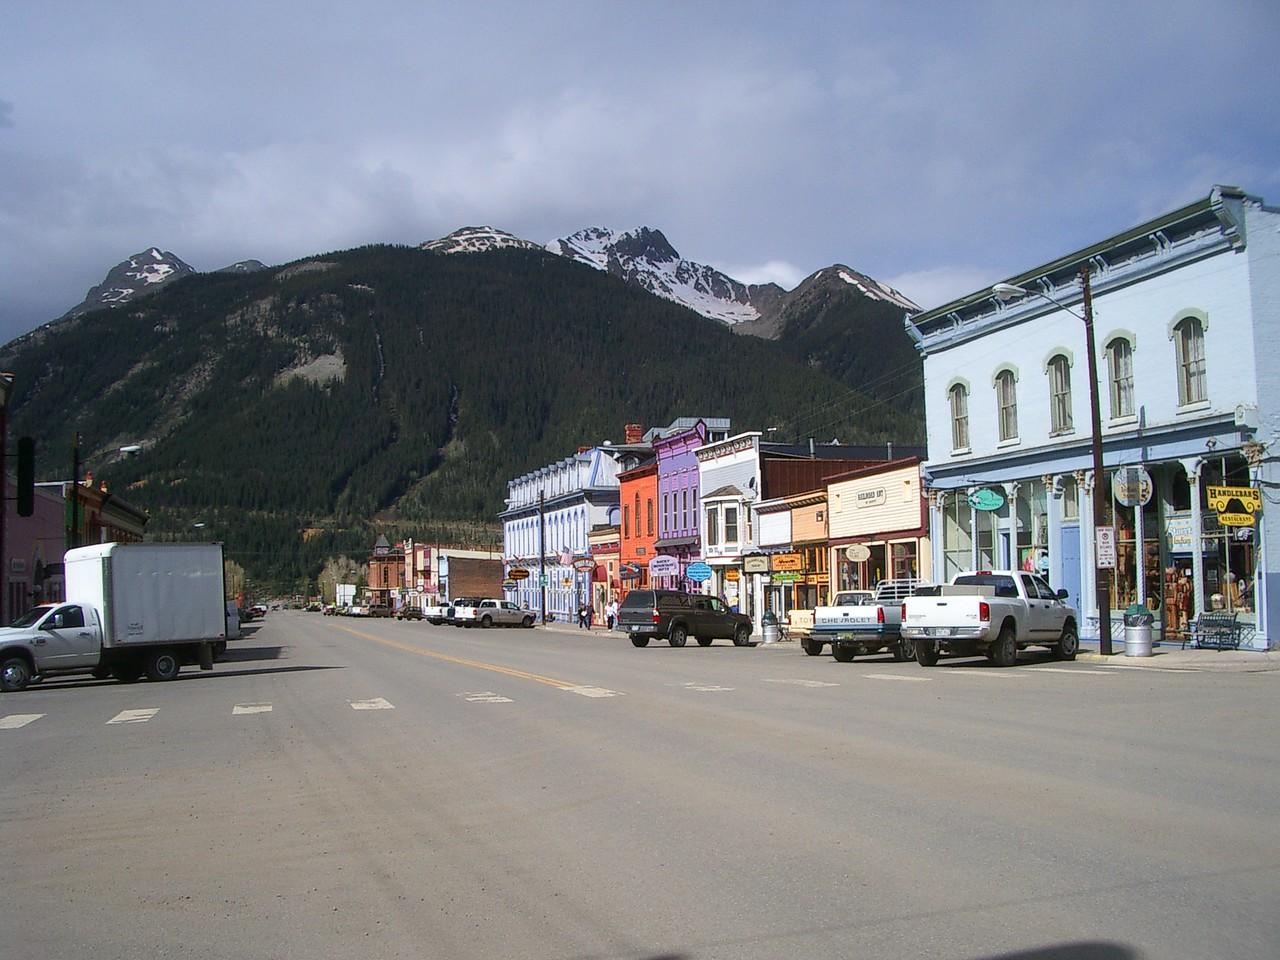 Another view of main street.